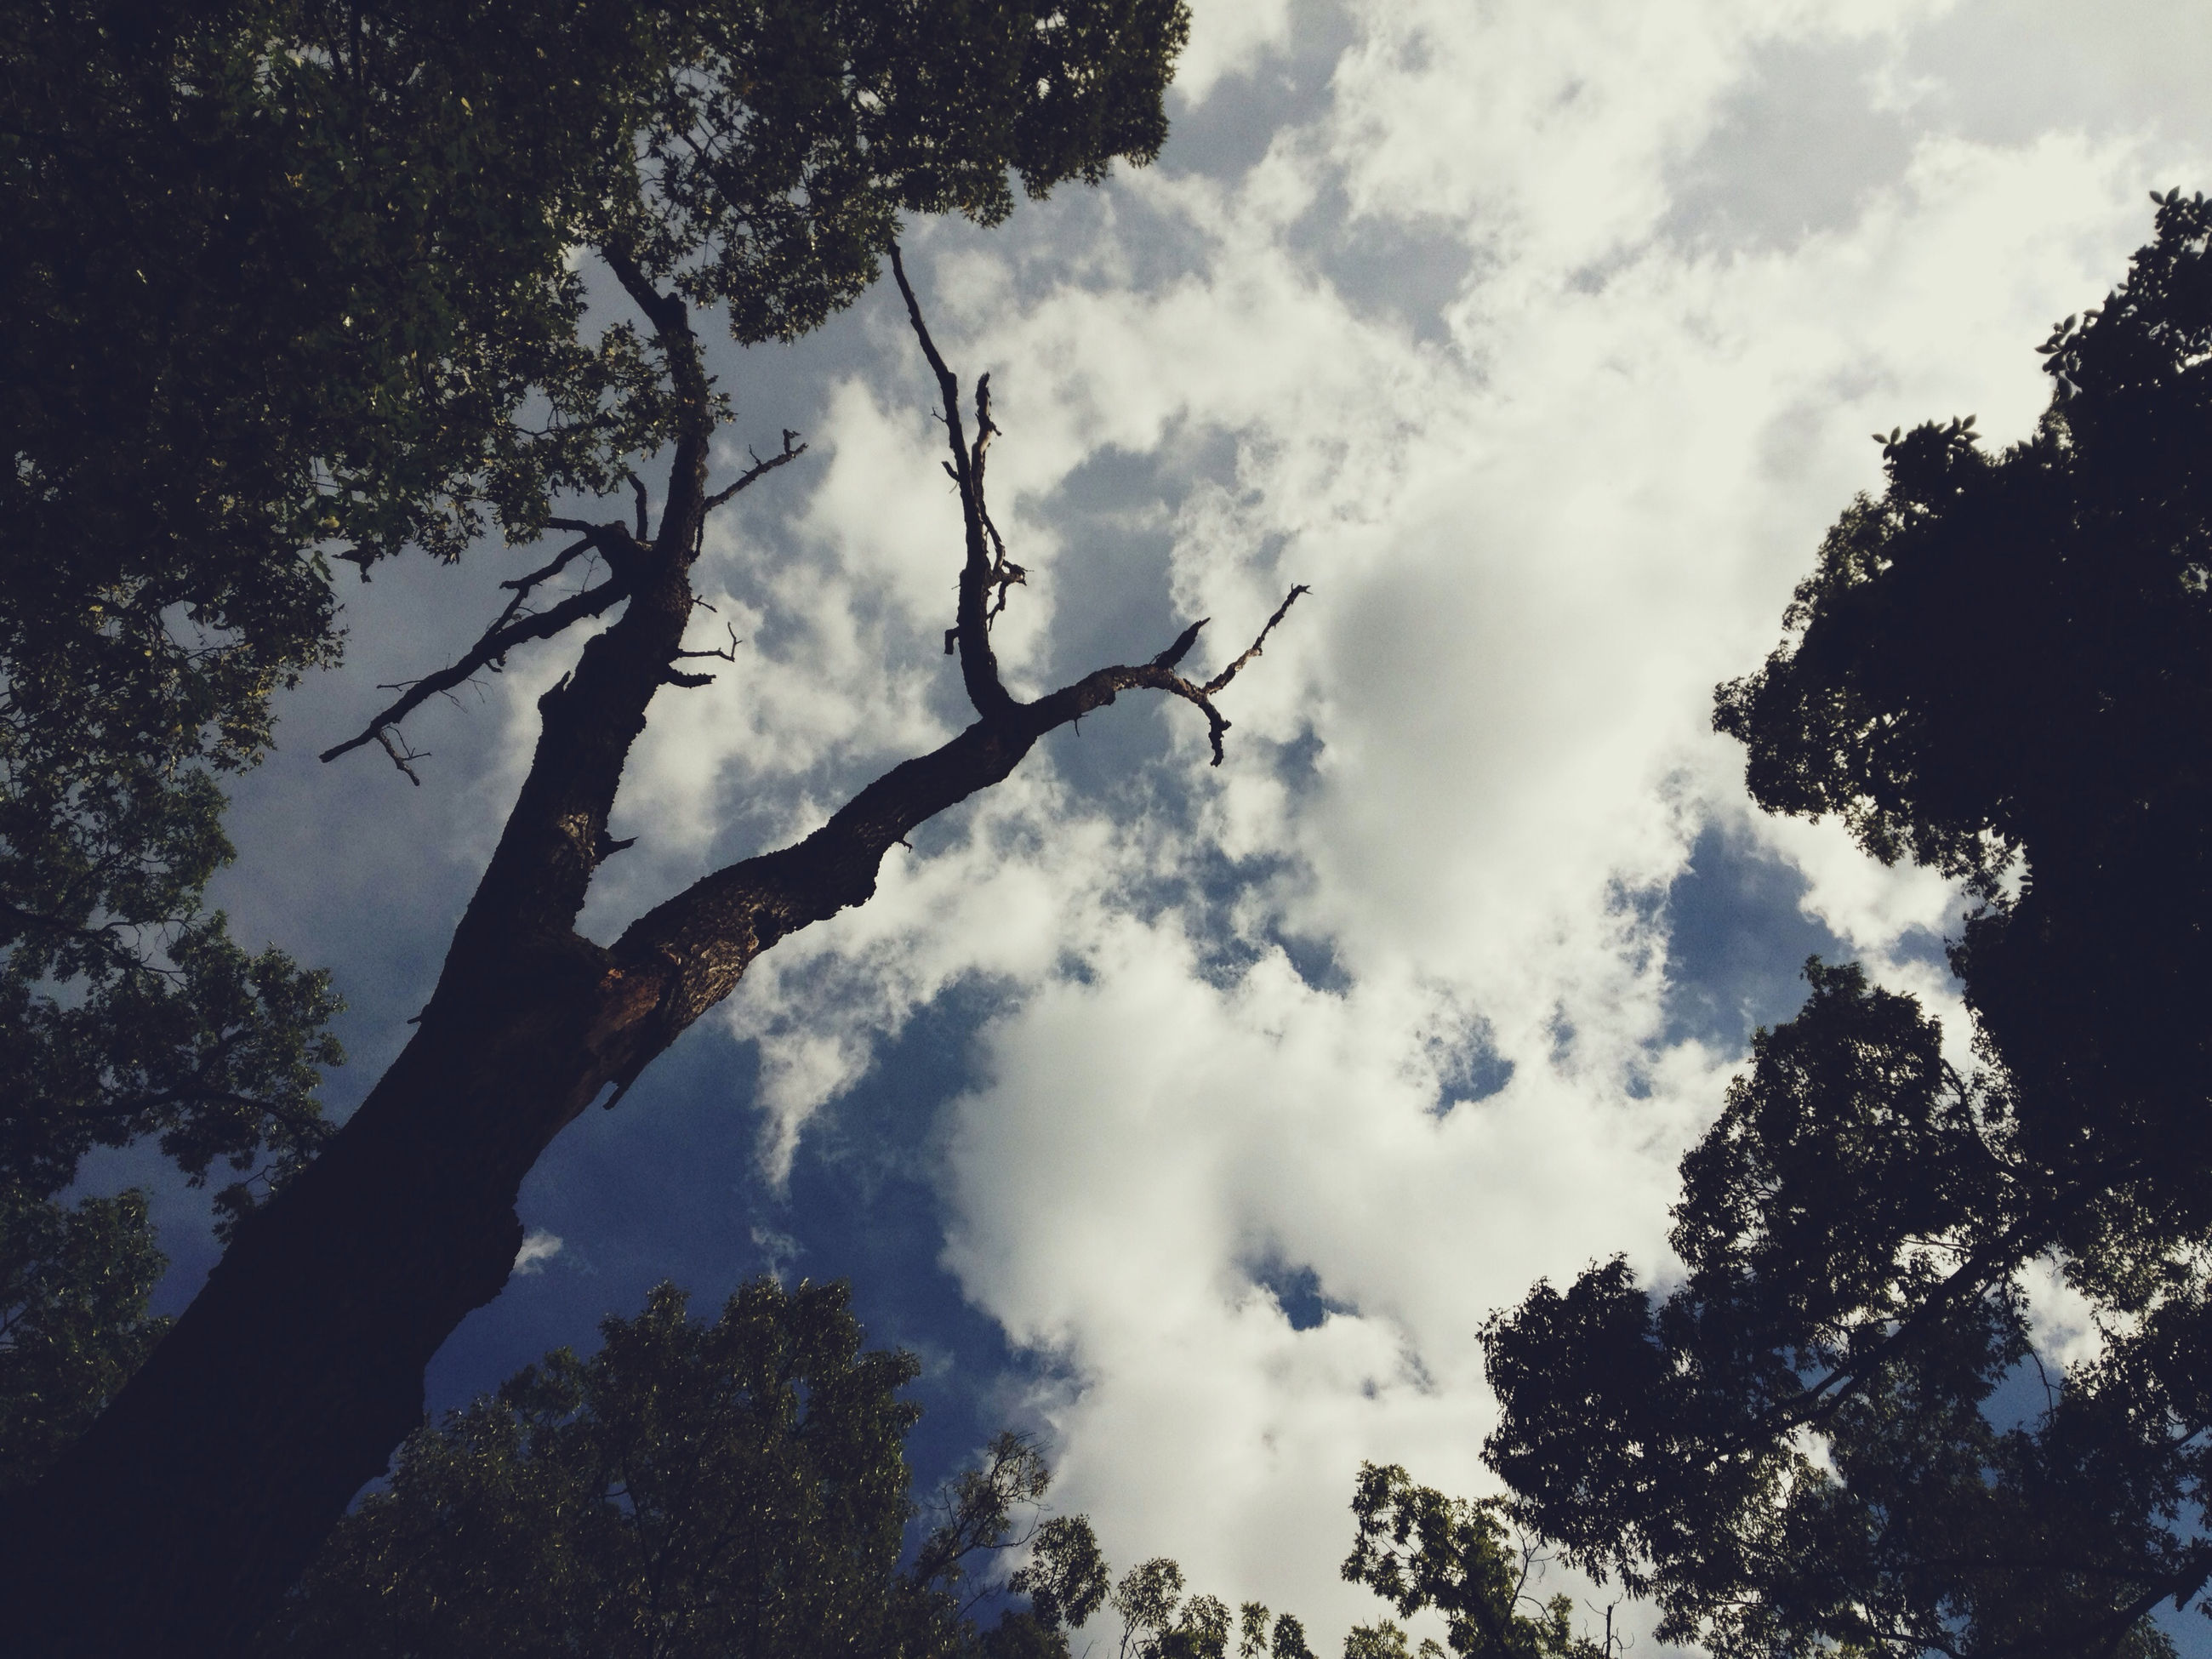 tree, low angle view, sky, cloud - sky, tranquility, branch, nature, silhouette, beauty in nature, growth, tranquil scene, scenics, cloudy, cloud, outdoors, no people, day, forest, high section, idyllic